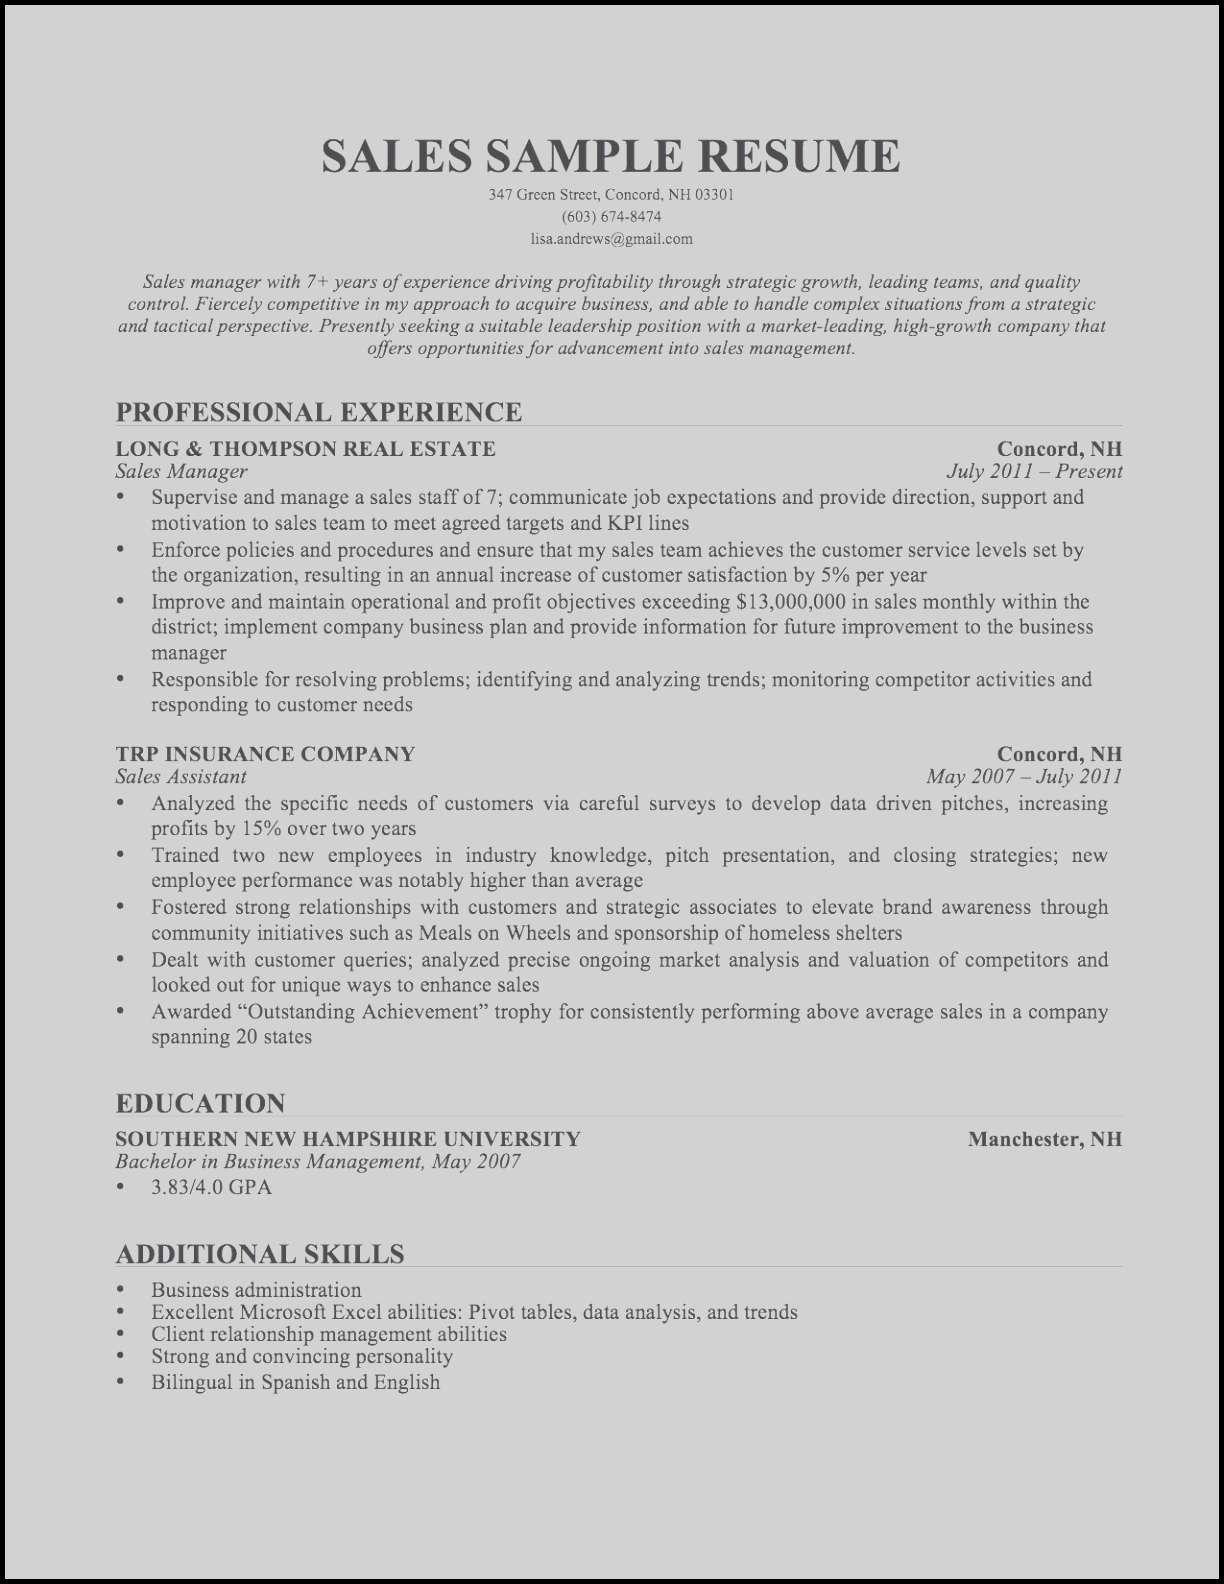 Visually Appealing Resume - Visual Resume Templates Terrific Resume Gpa Unique American Resume